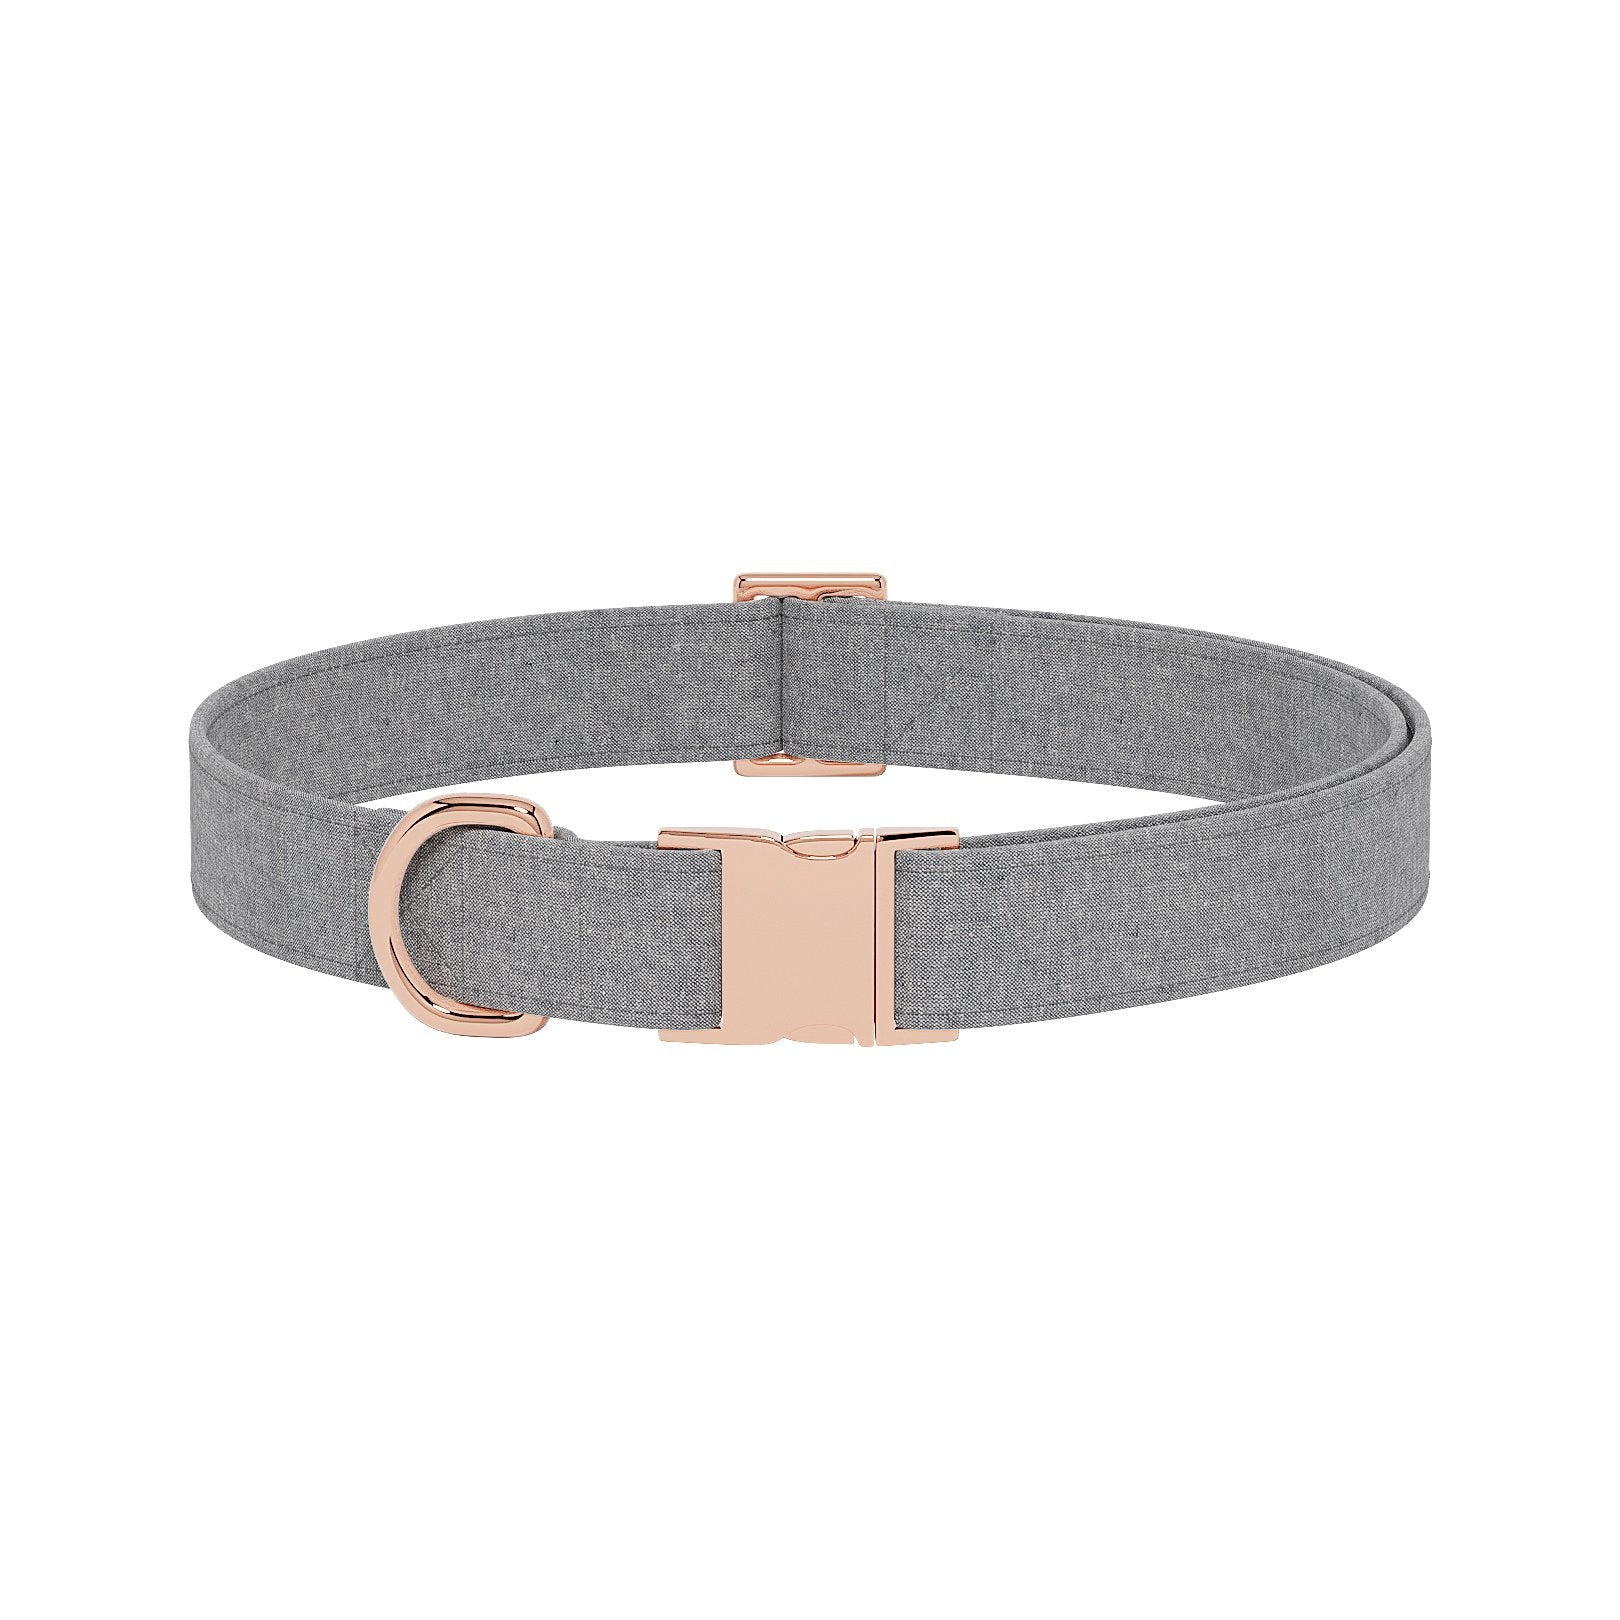 Linen Graphite Dog Collar